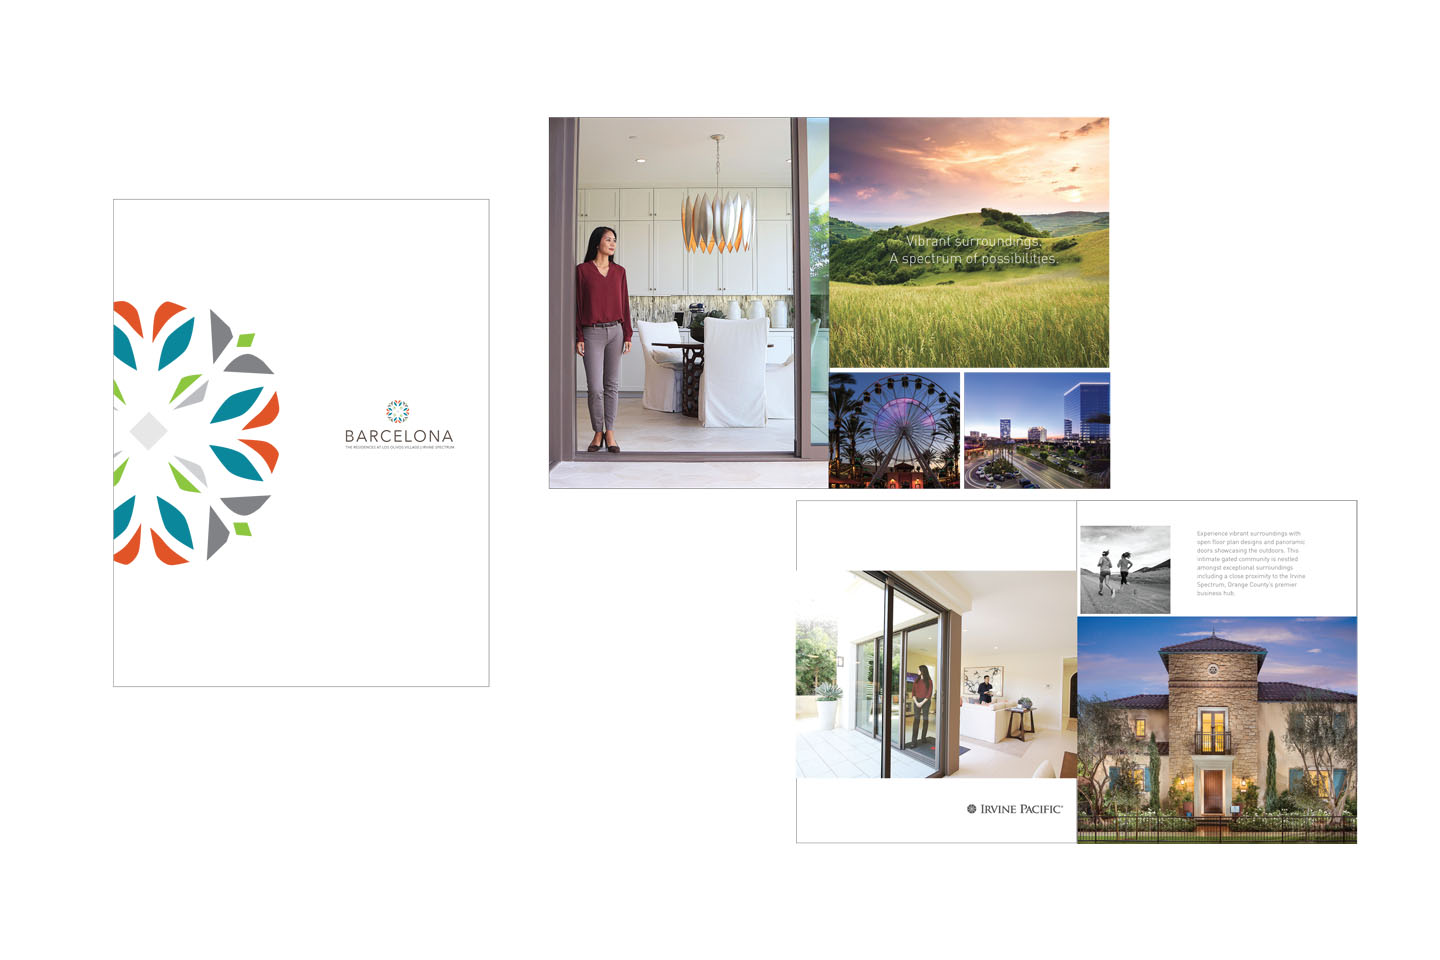 Residential development marketing campaign brand launch